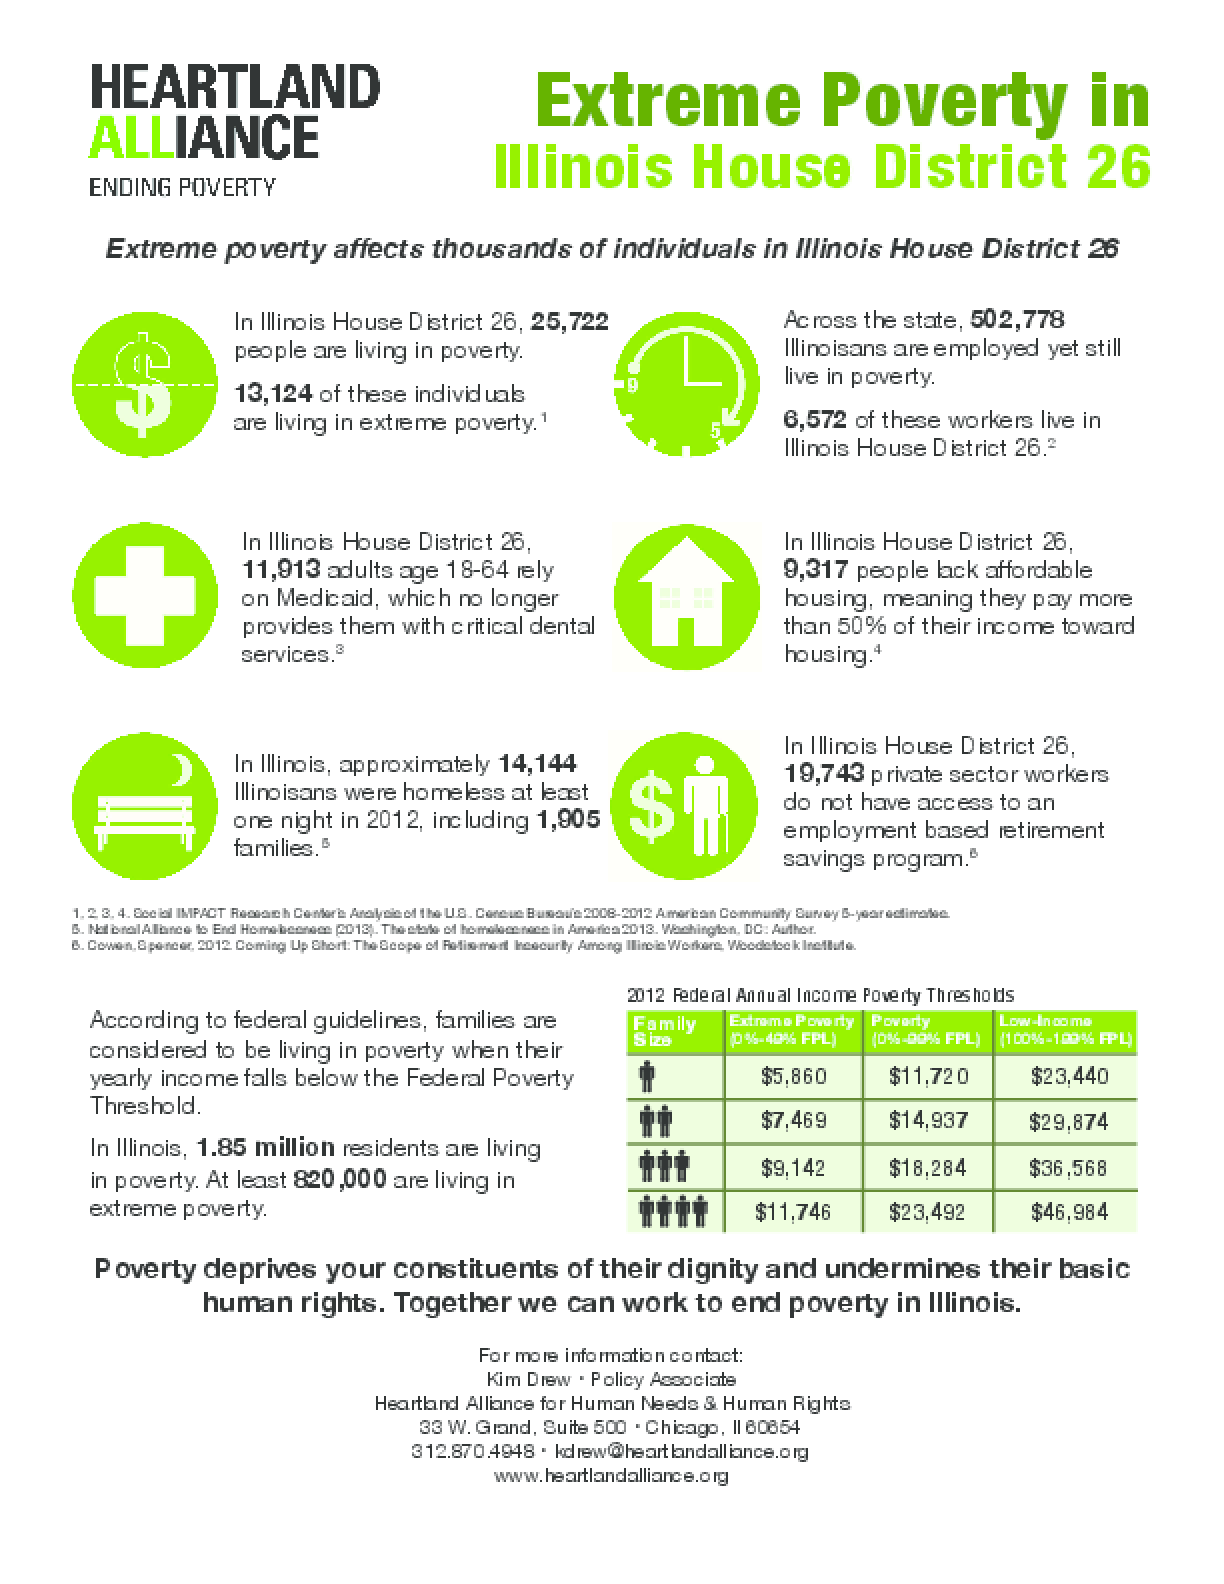 Poverty Fact Sheets for Illinois House District 26